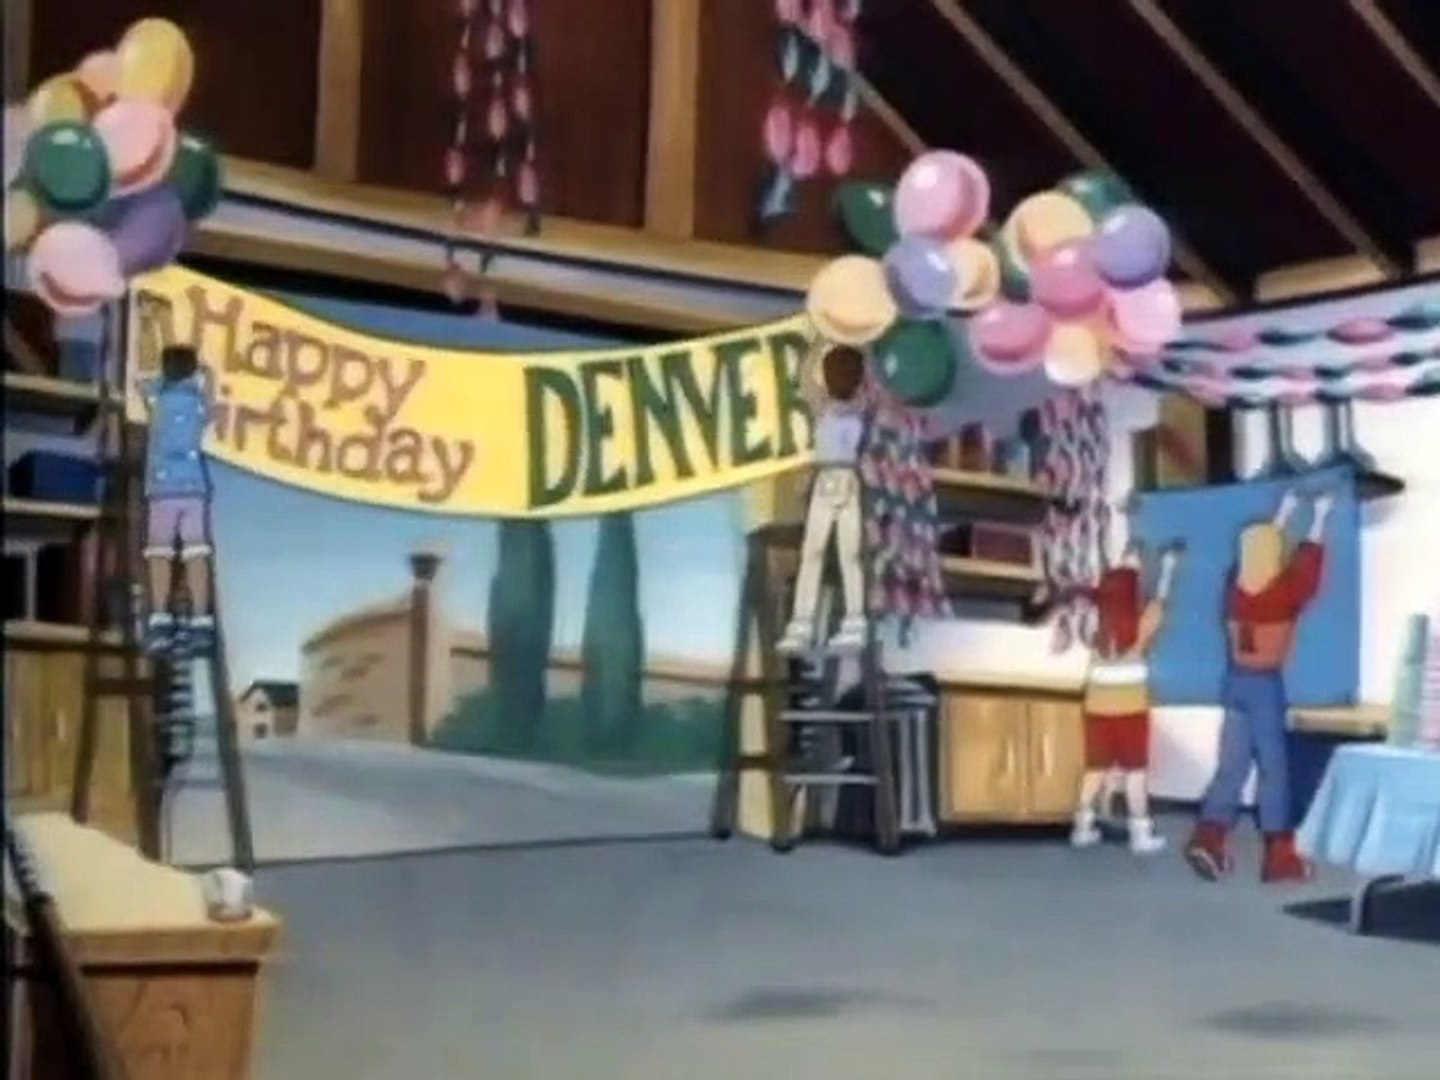 Denver the last dinosaur - cartoon - 34 - Birthday Party From Outer Space